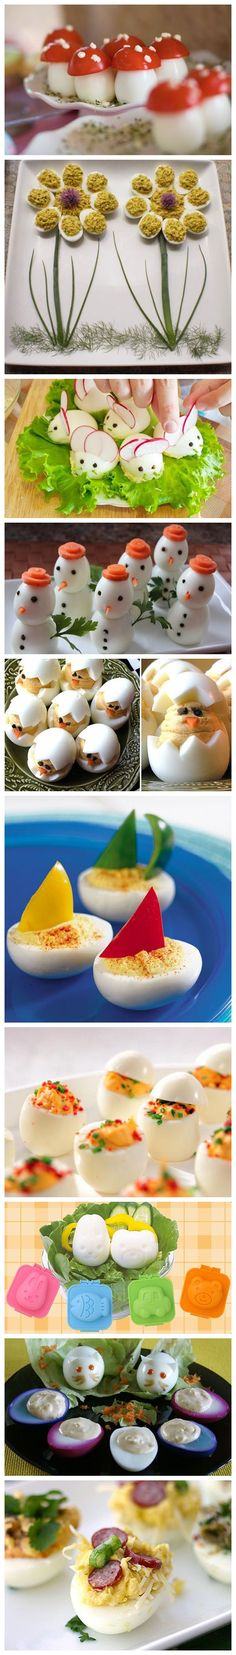 fun & easy to make #creative #egg #food